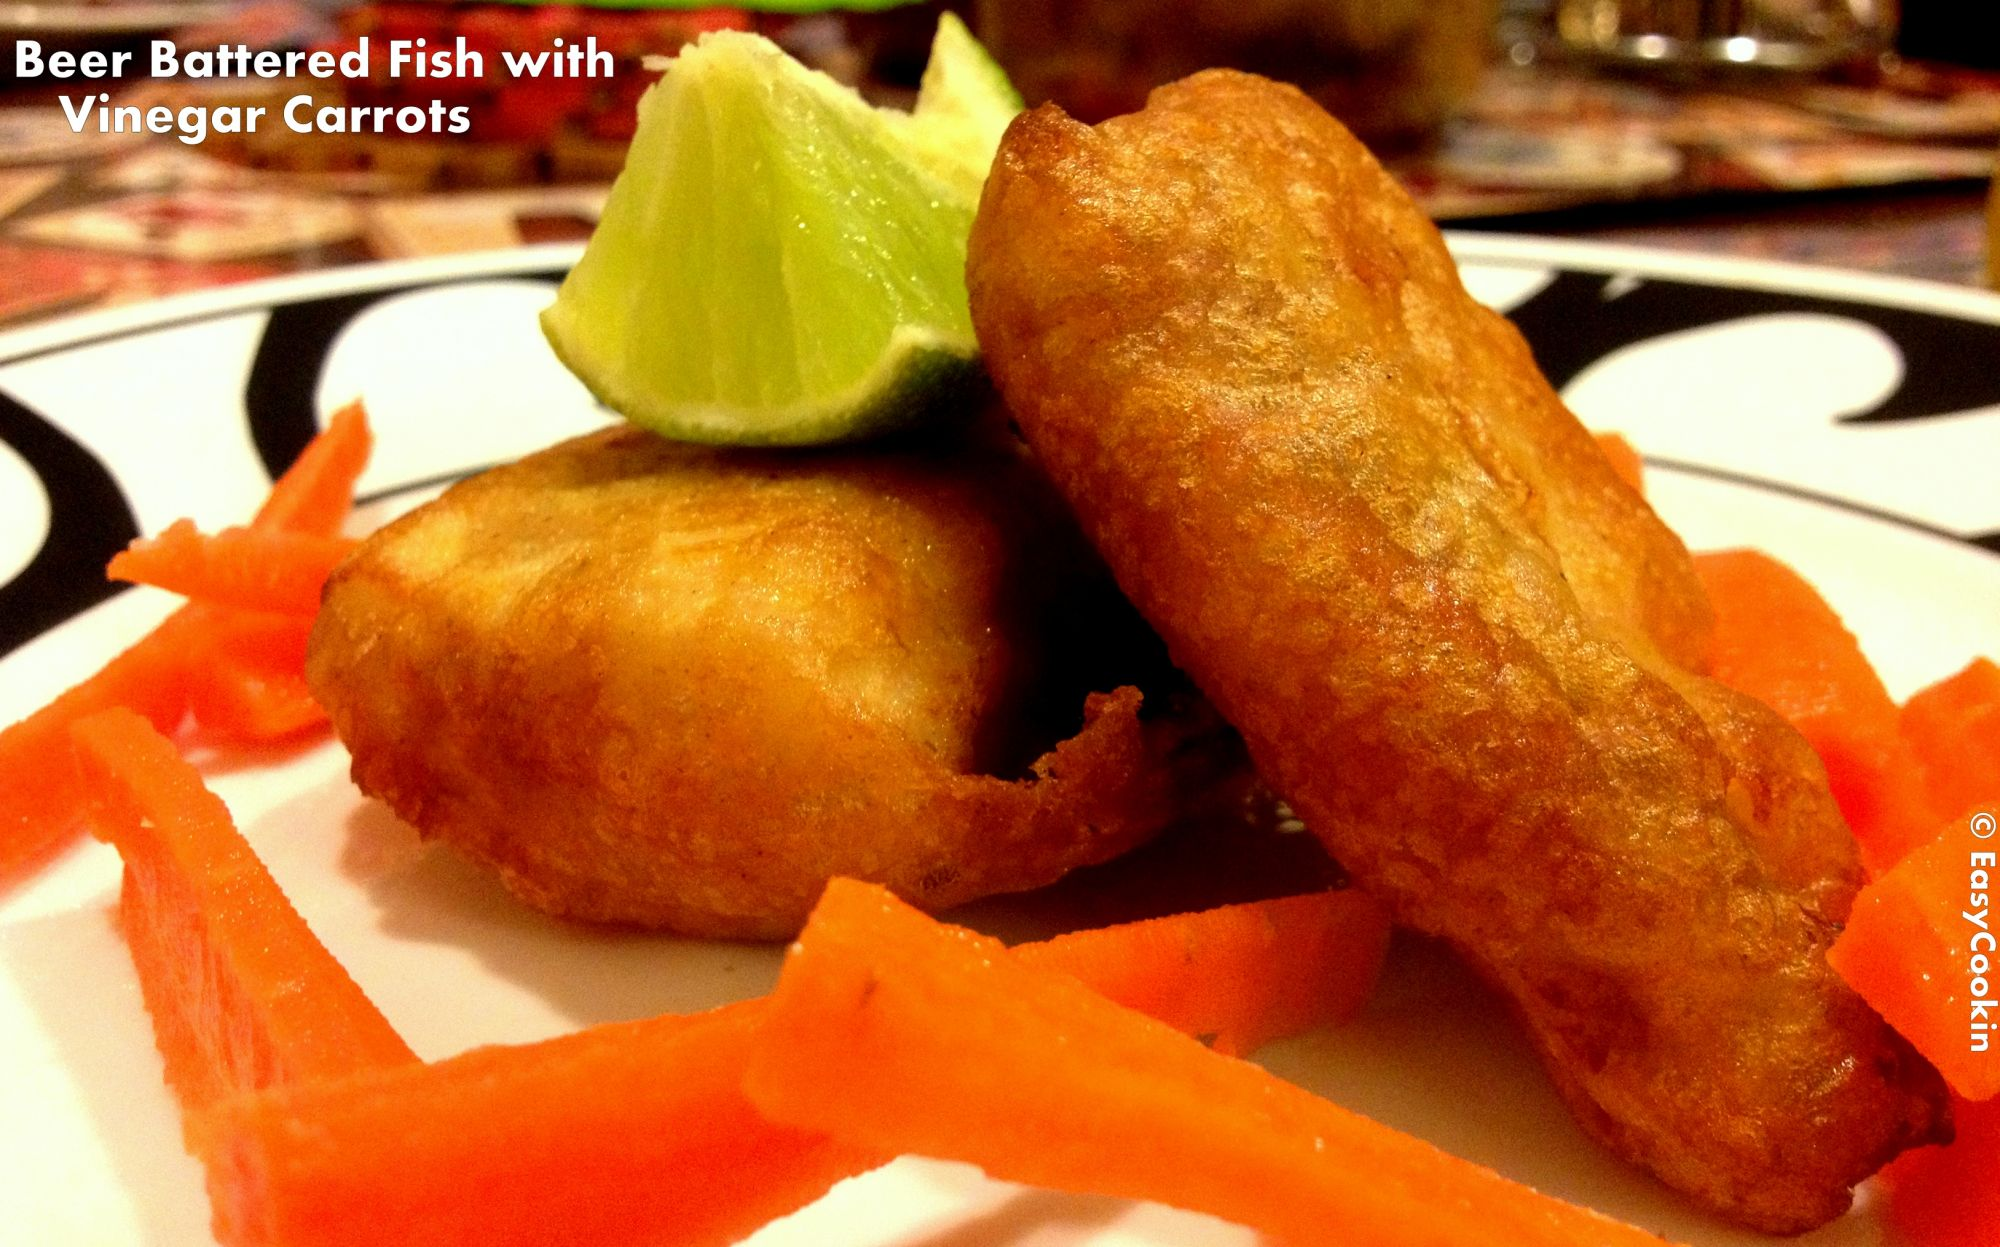 Beer battered fish with vinegar carrots recipe 4 1 5 for How to make batter for fish